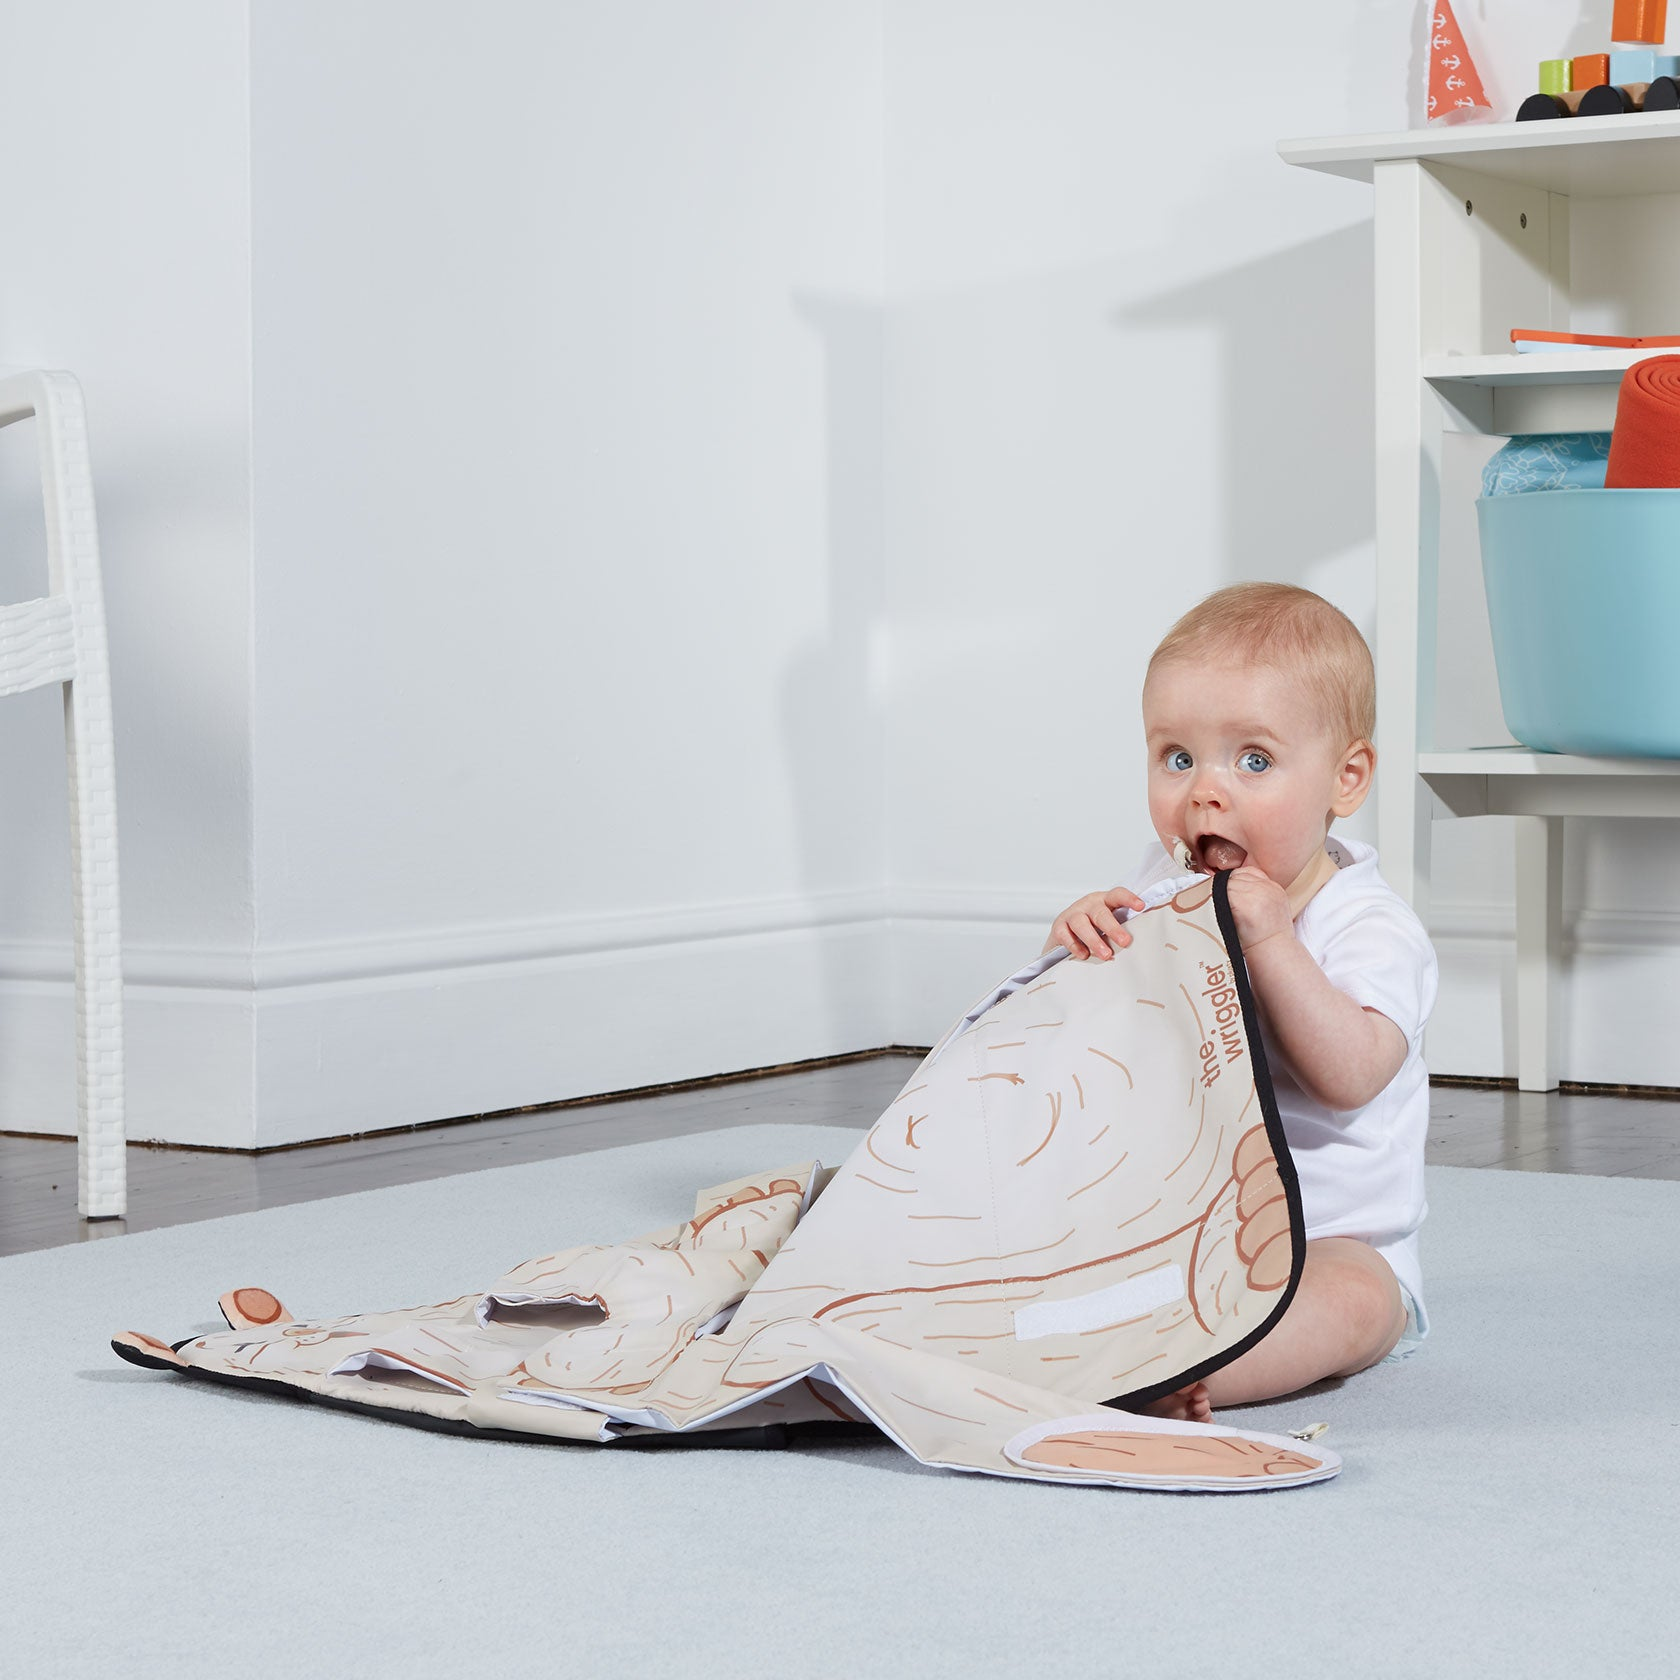 Baby placing The Wriggler changing pad in her mouth to show that the materials are BPA and phthalate free and rigorously safety tested to meet international safety standards